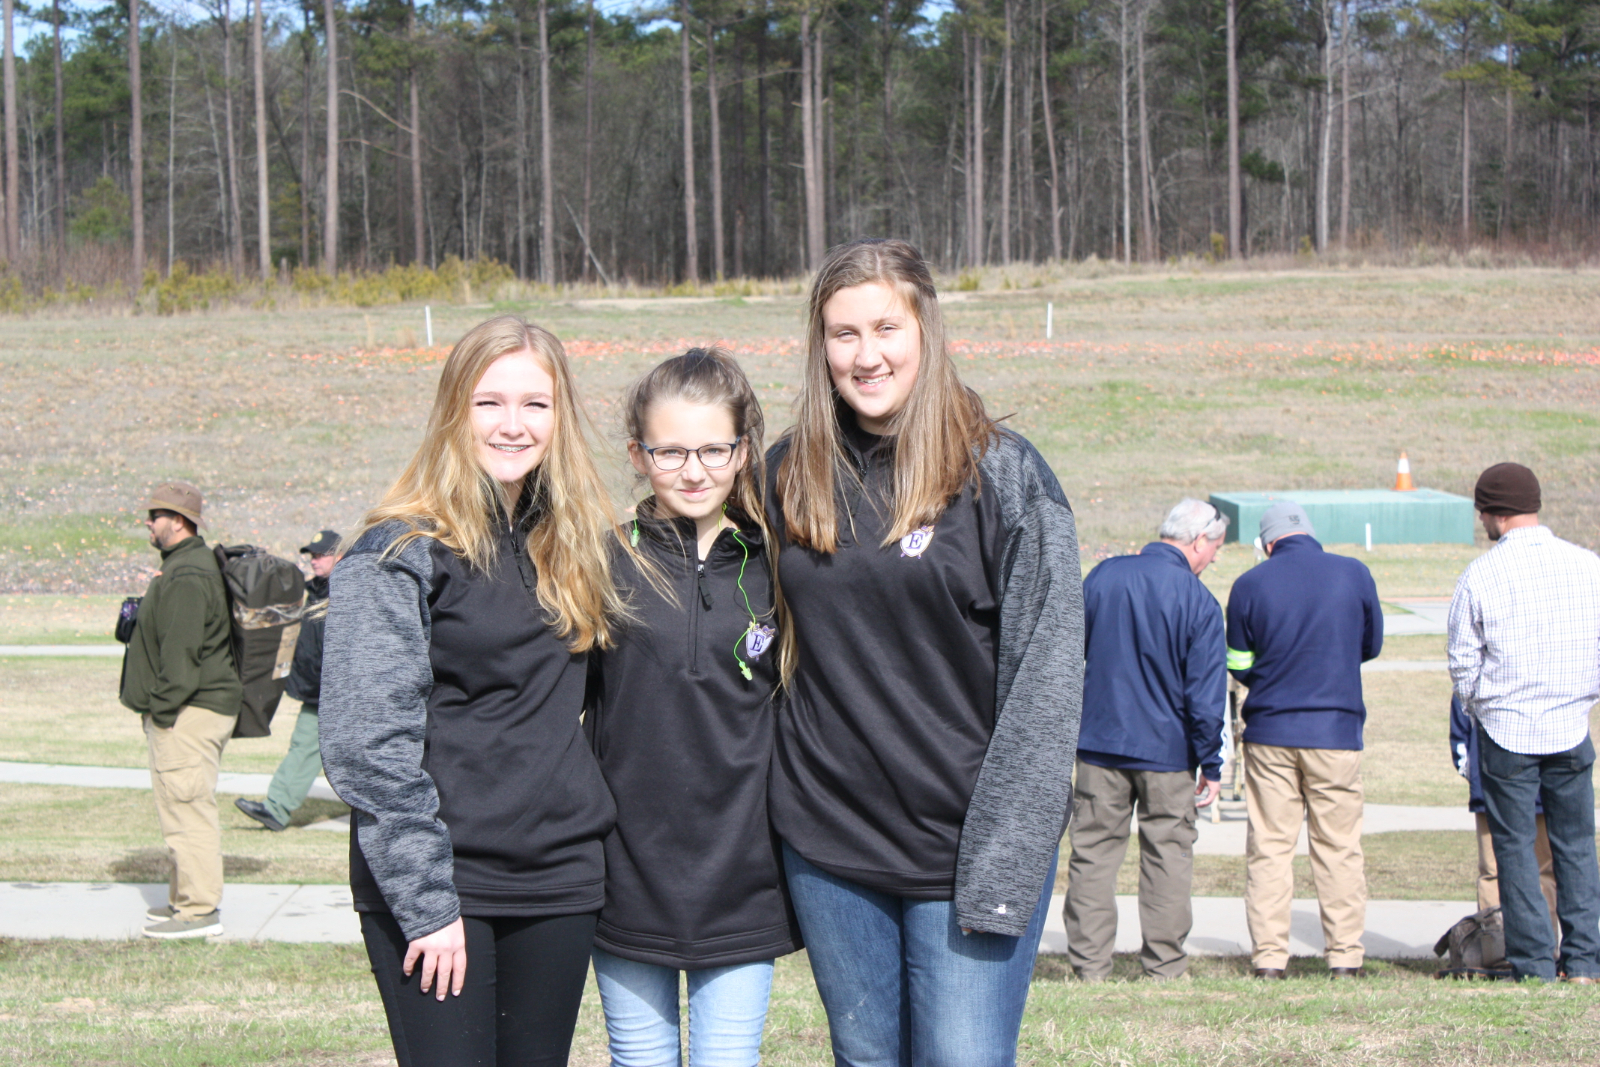 Emerald Clay Team competed in the 2nd leg Trap Qualifier of the SCDNR Governor's Cup event at Palmetto Shooting Complex in Edgefield, SC